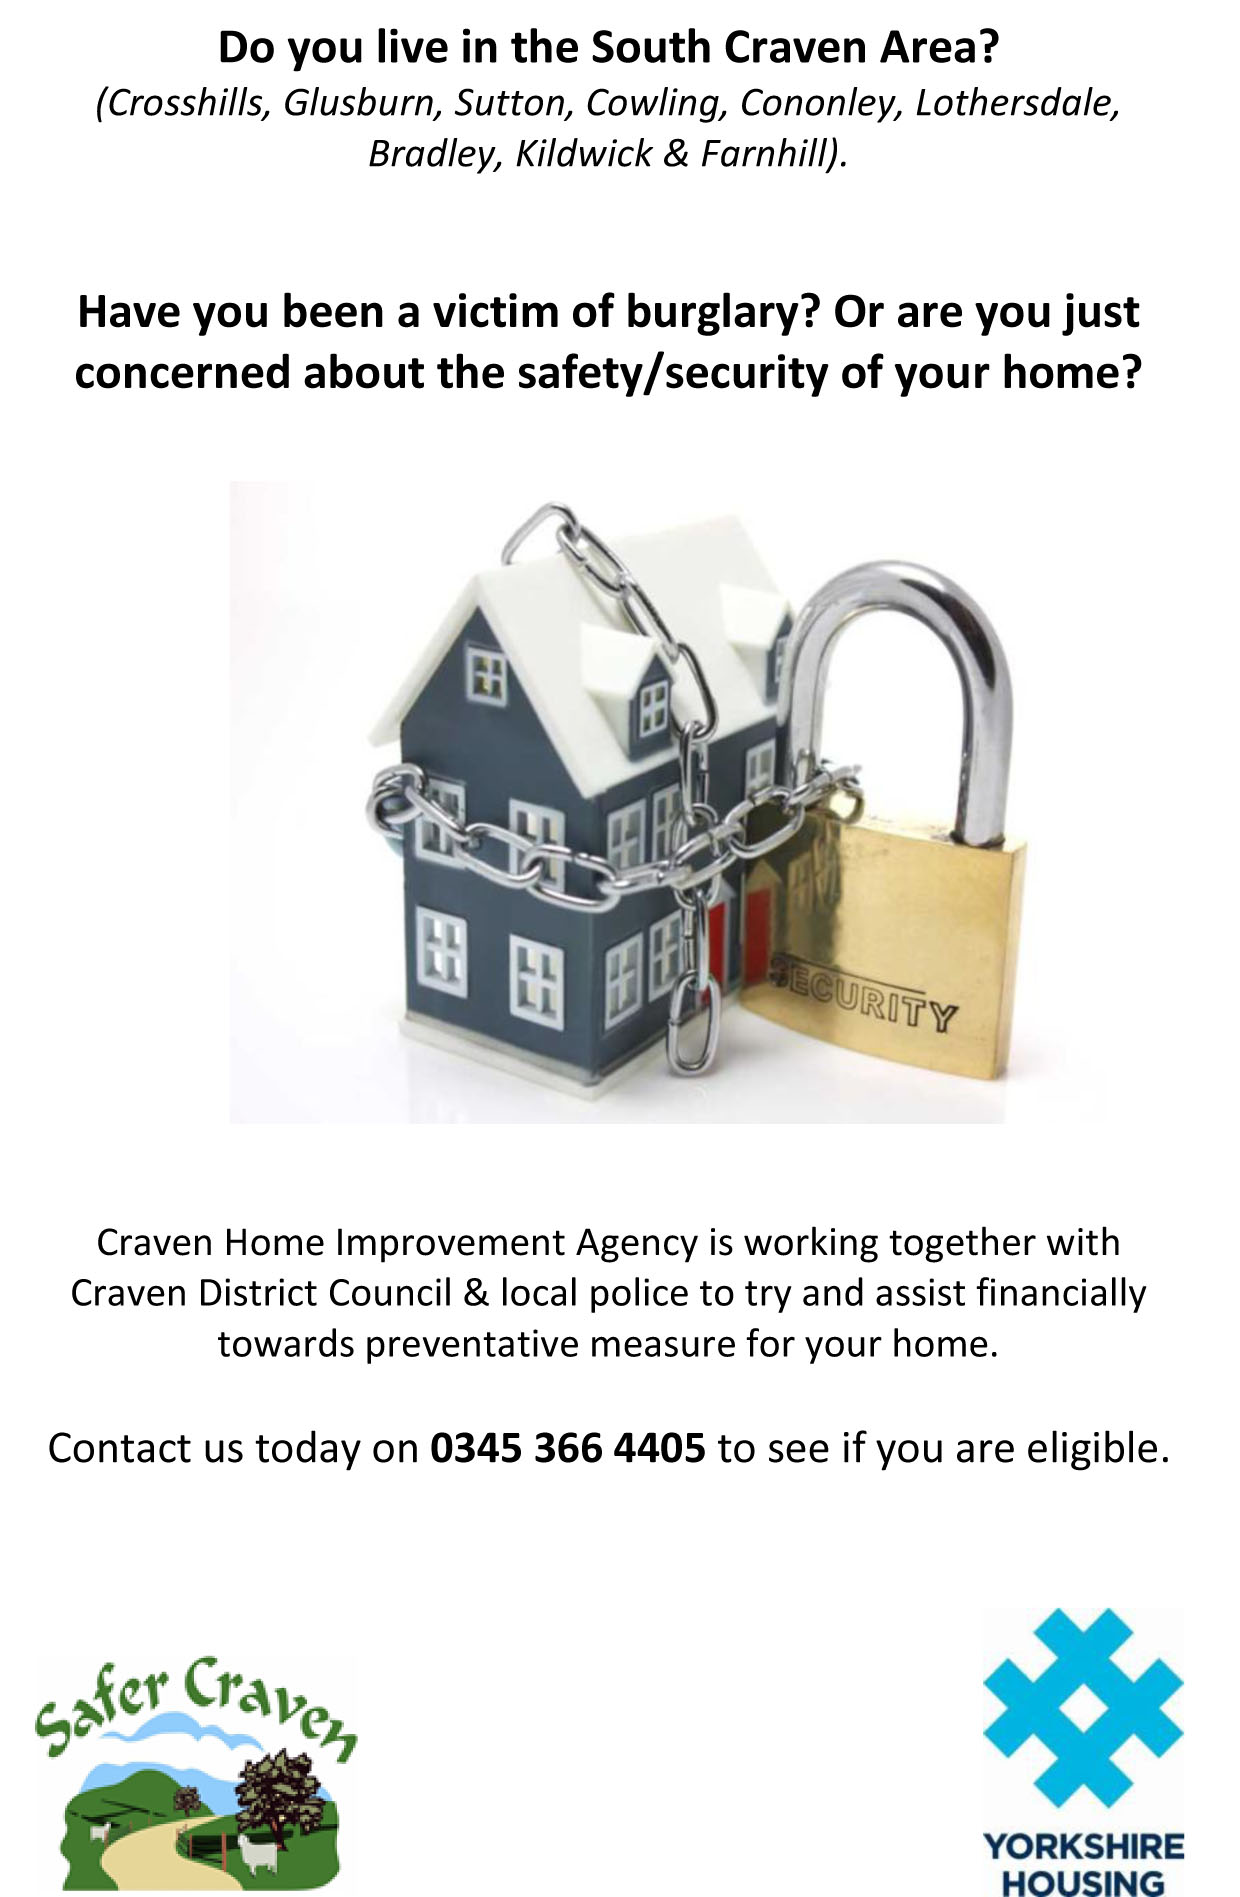 Home security upgrade flyer South Craven area